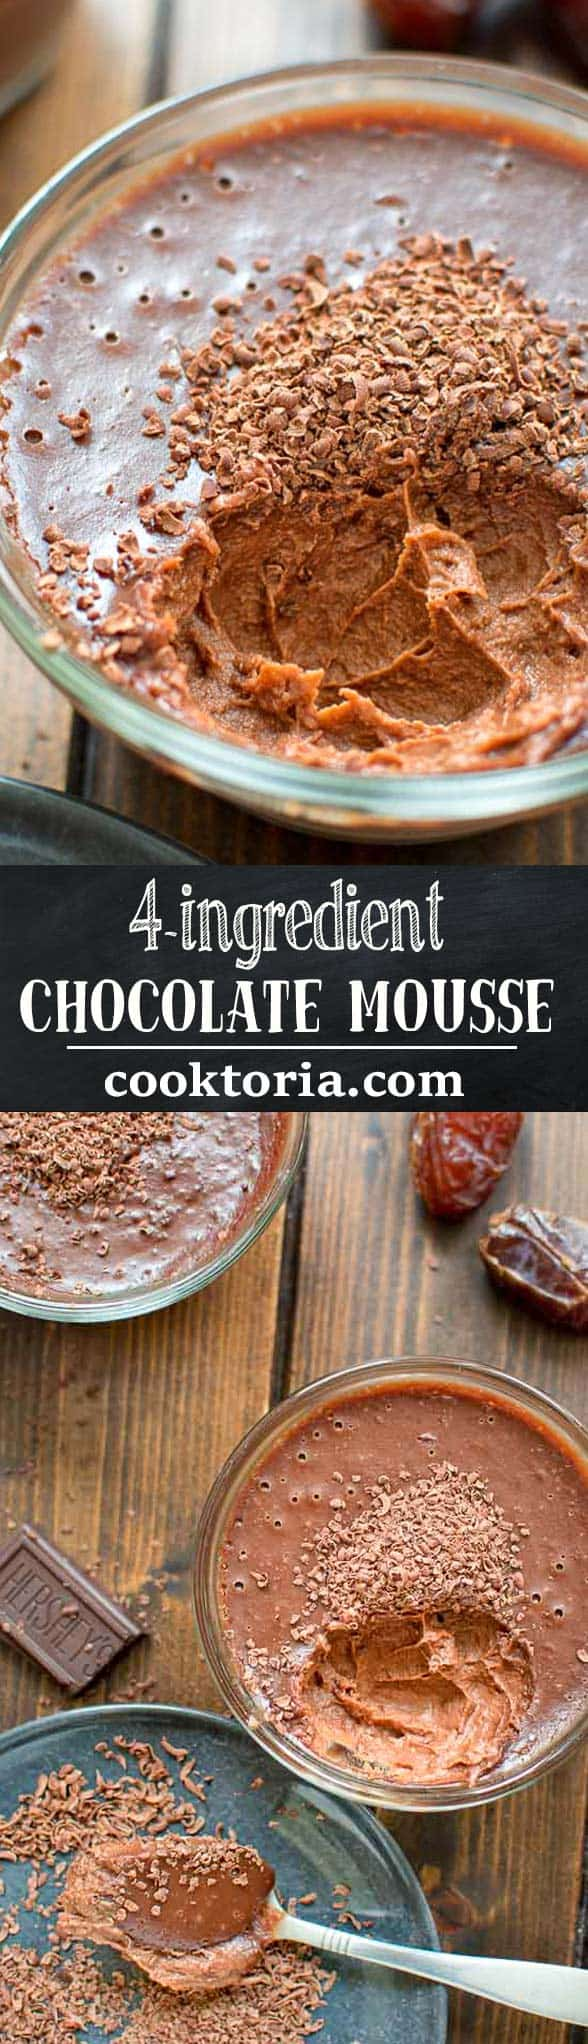 Rich and smooth, this 4 Ingredient Chocolate Mousse made with coconut milk and a hint of peanut butter is truly delicious and easy to make.  ❤ COOKTORIA.COM